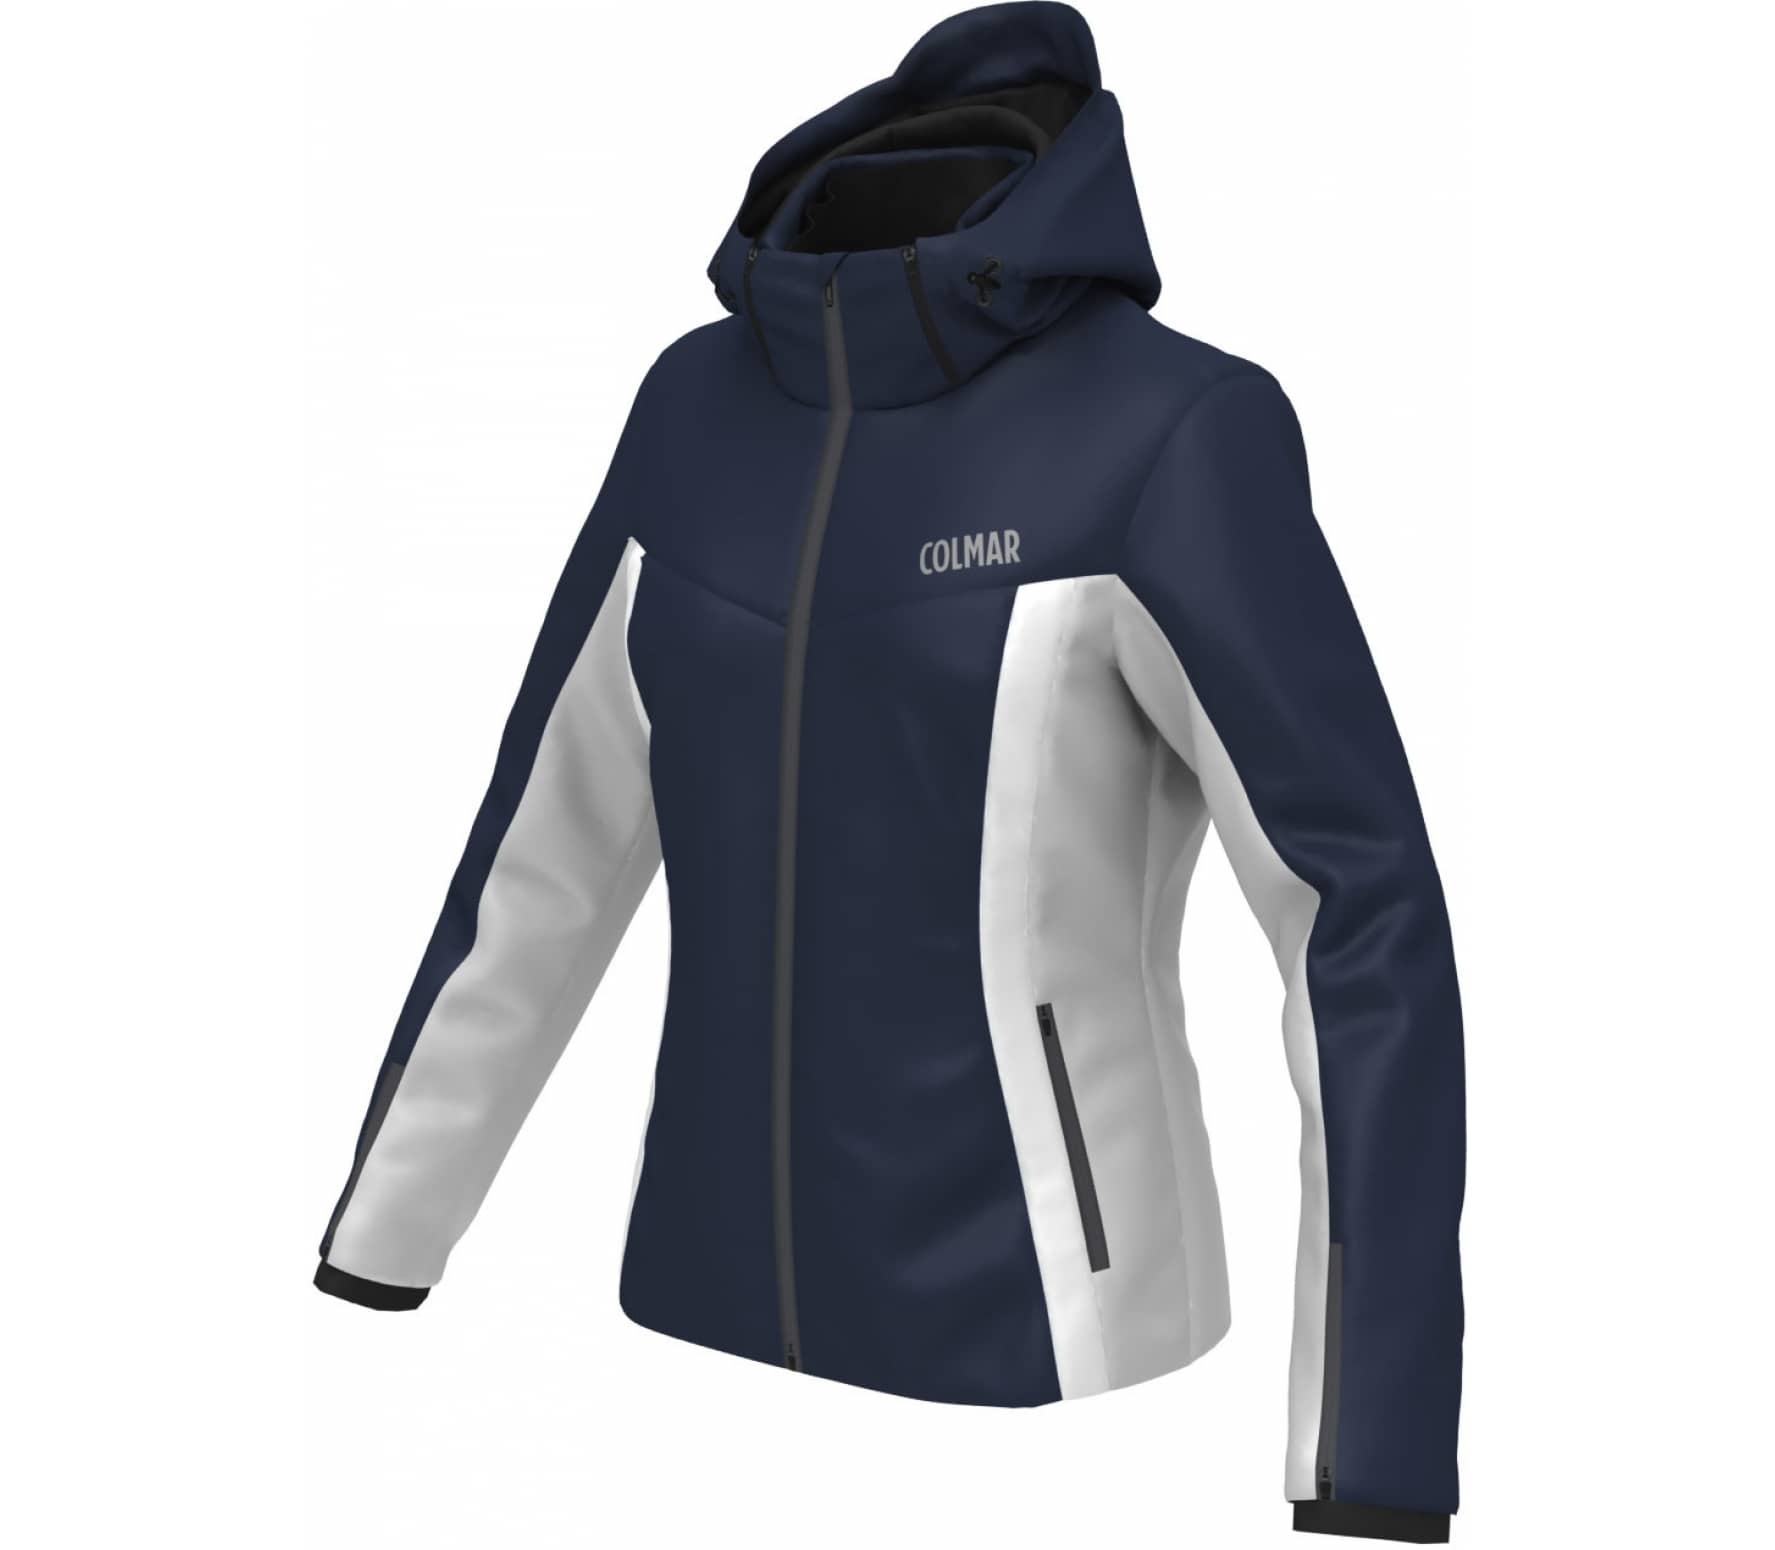 bb281a55f0 Colmar - Meribel women s ski jacket (dark blue white) - buy it at ...